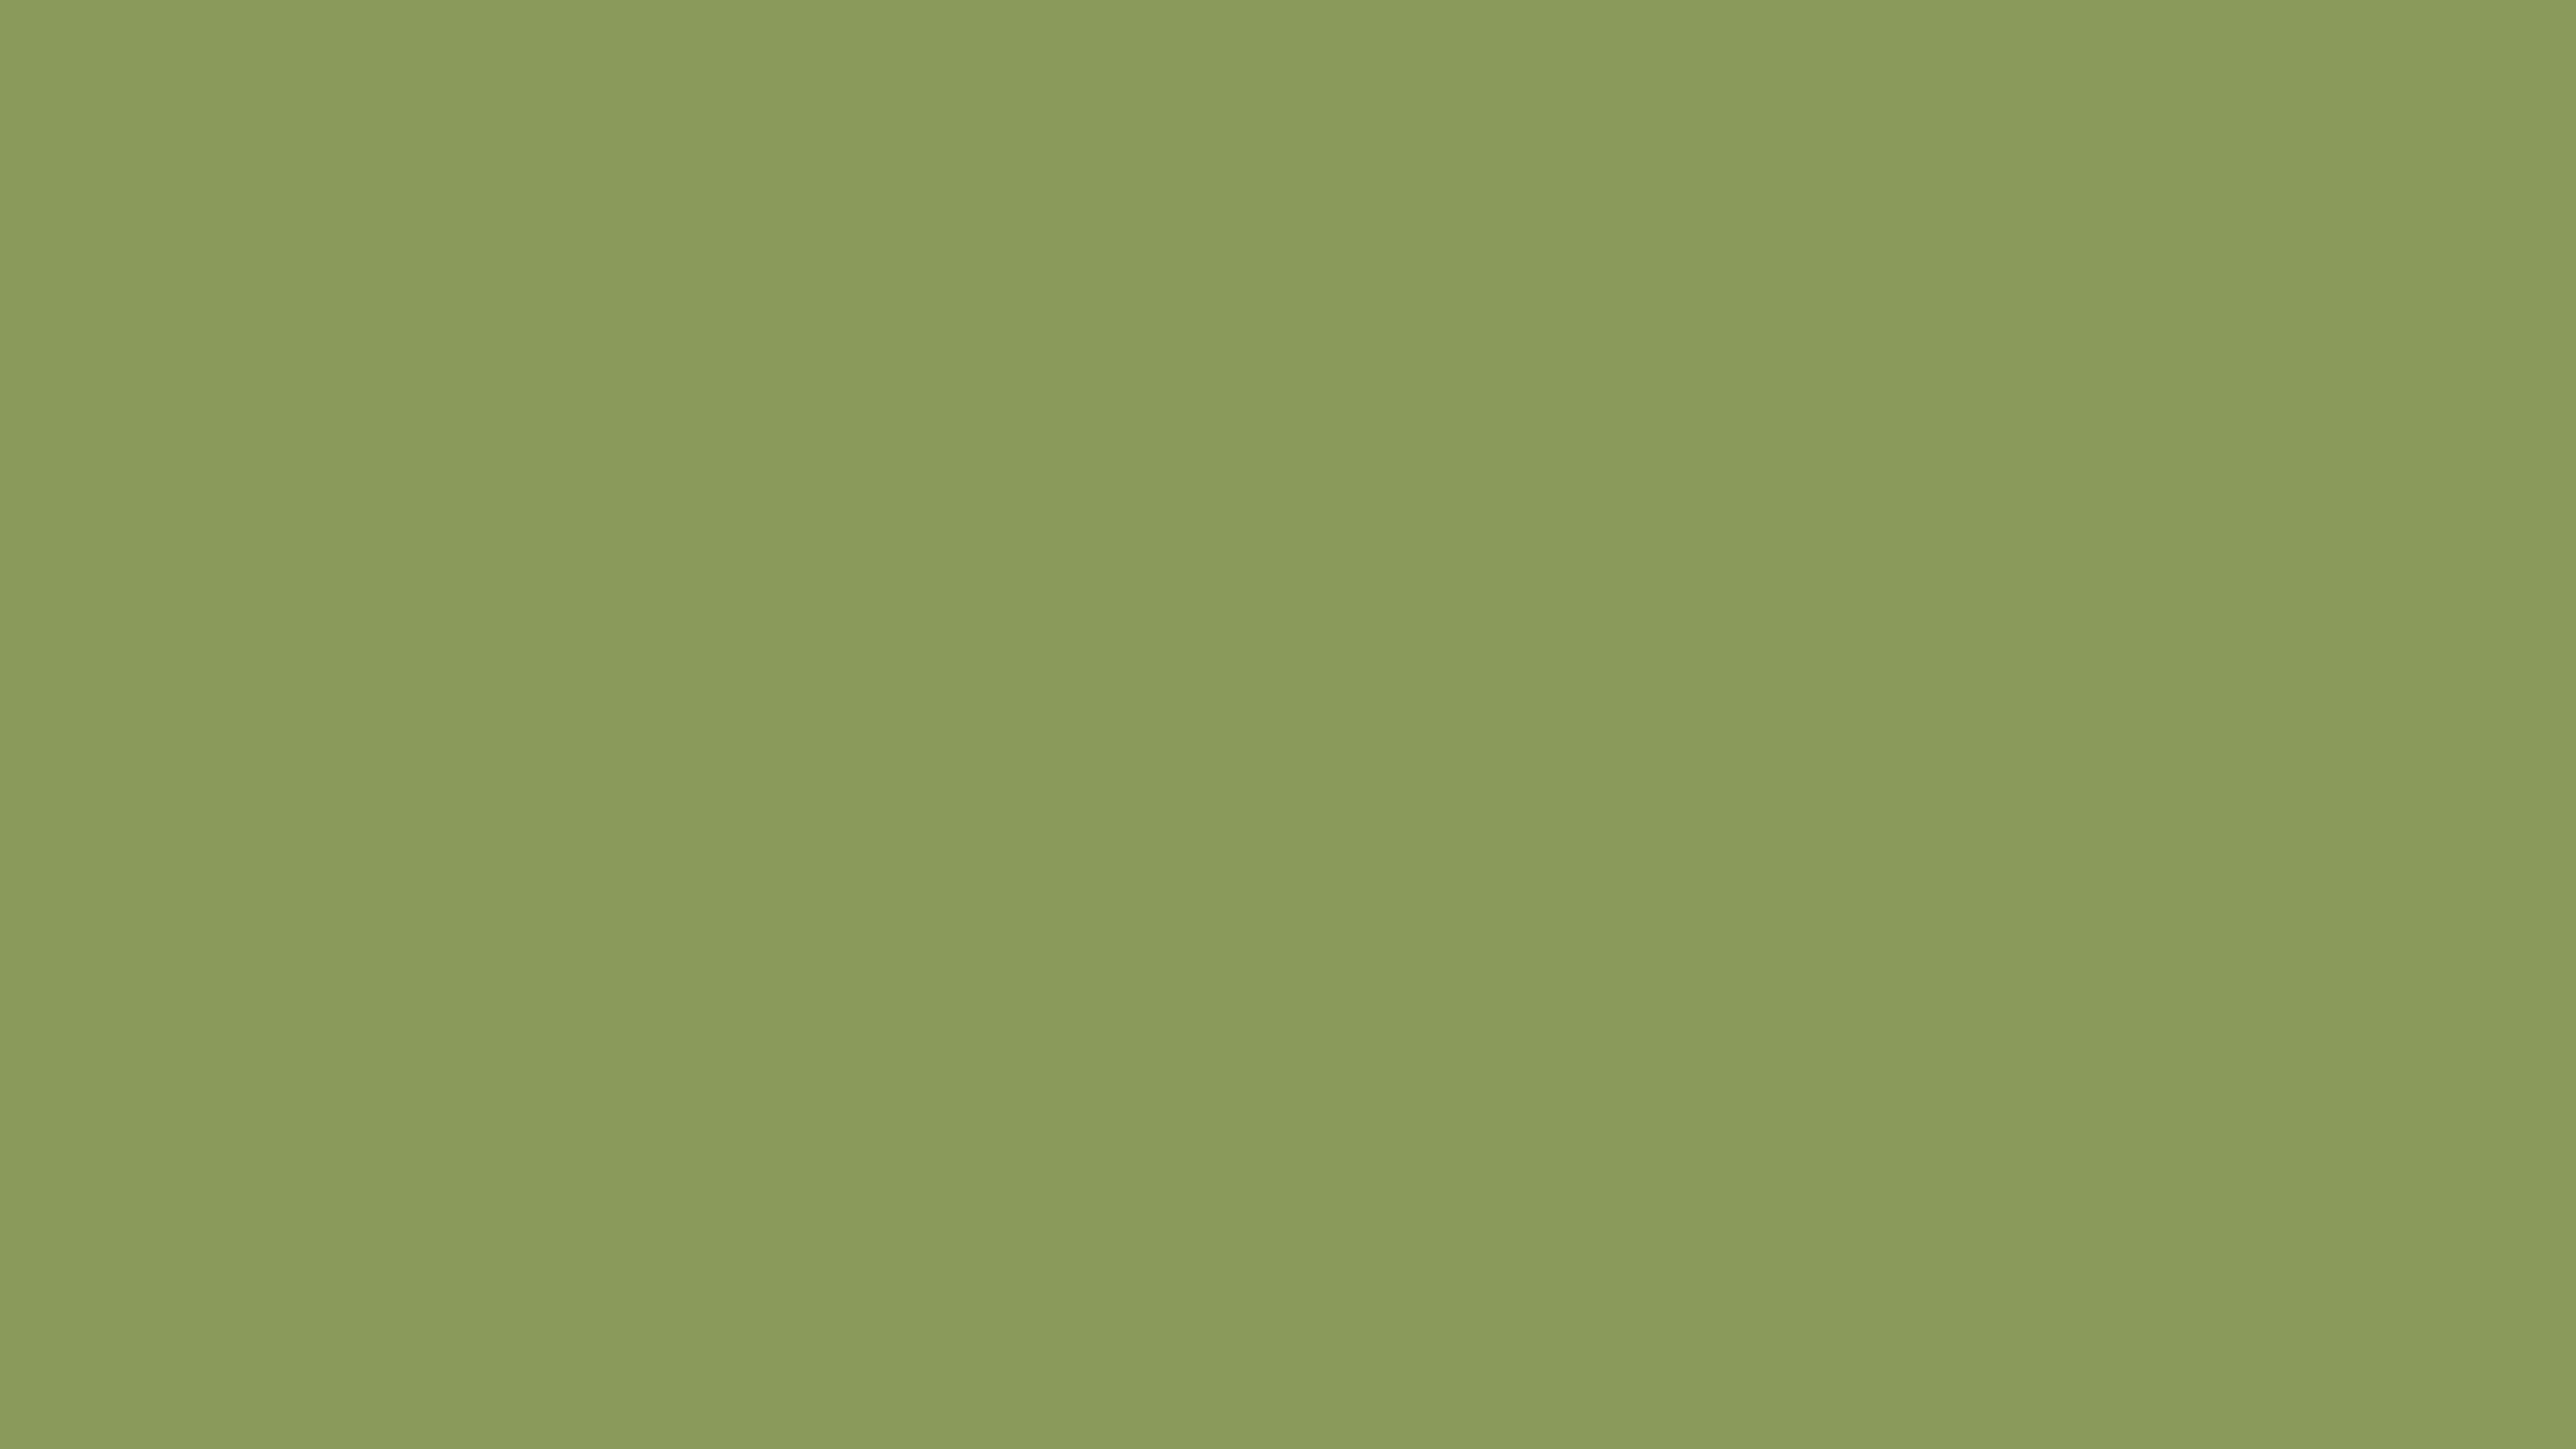 4096x2304 Moss Green Solid Color Background